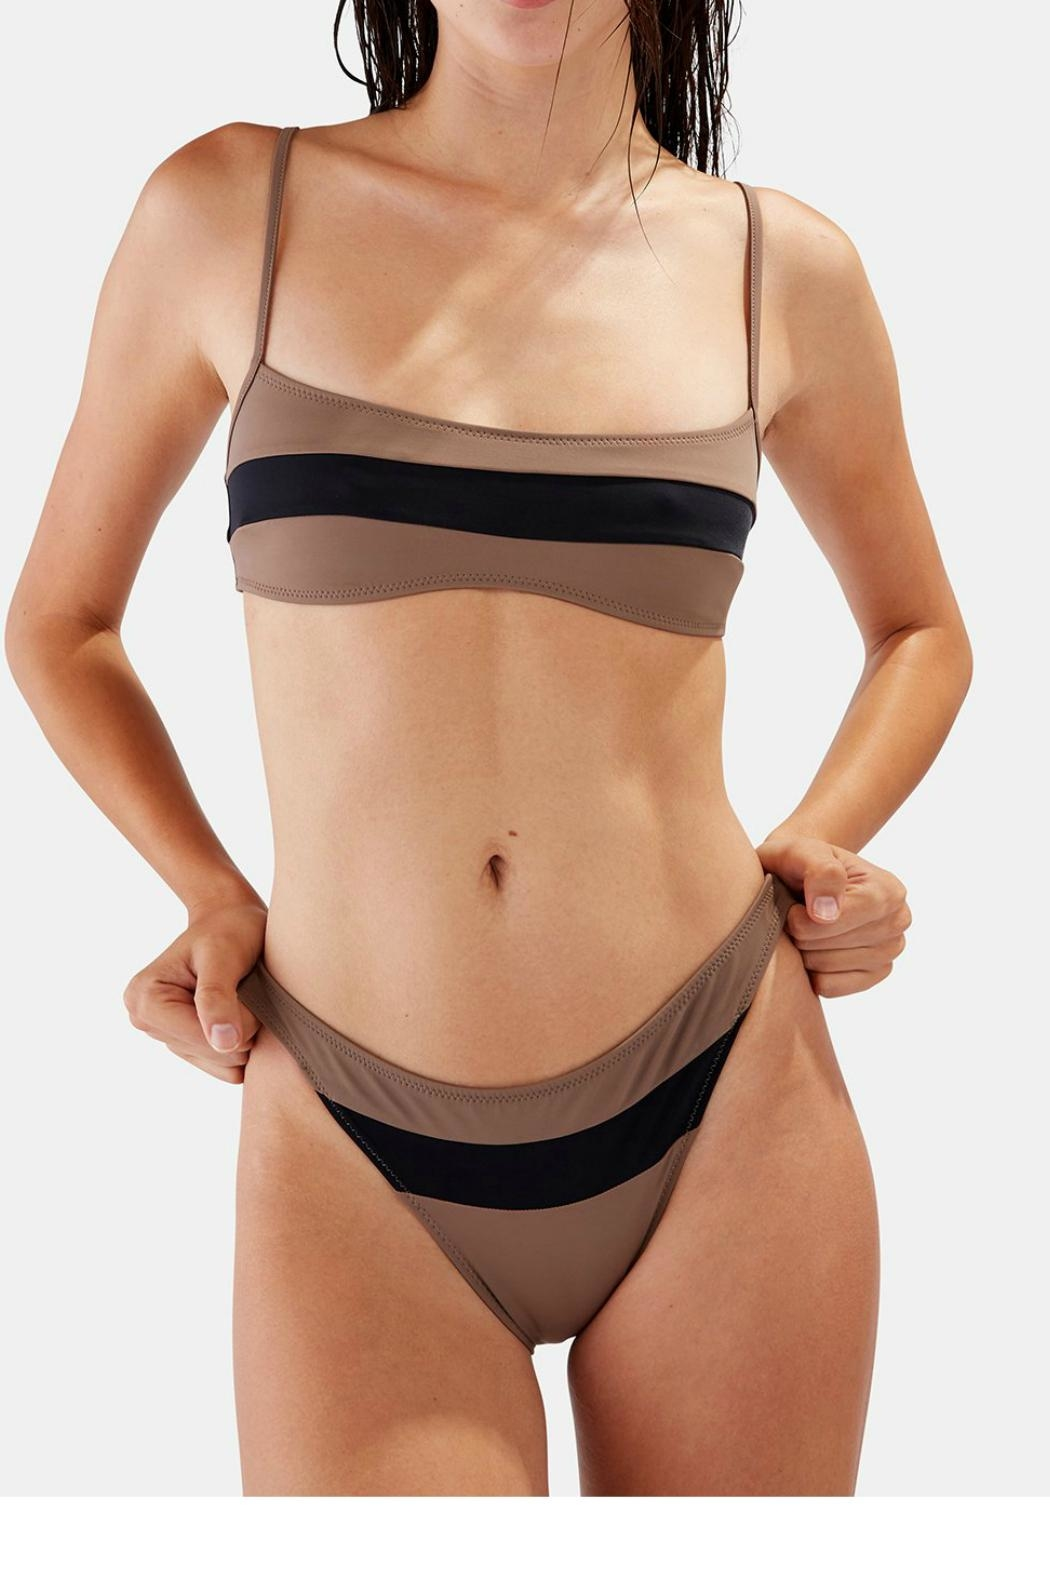 Womens Brooke Striped Bandeau Bikini Top Solid & Striped Buy Cheap Best Seller Quality Outlet Store DUlf76